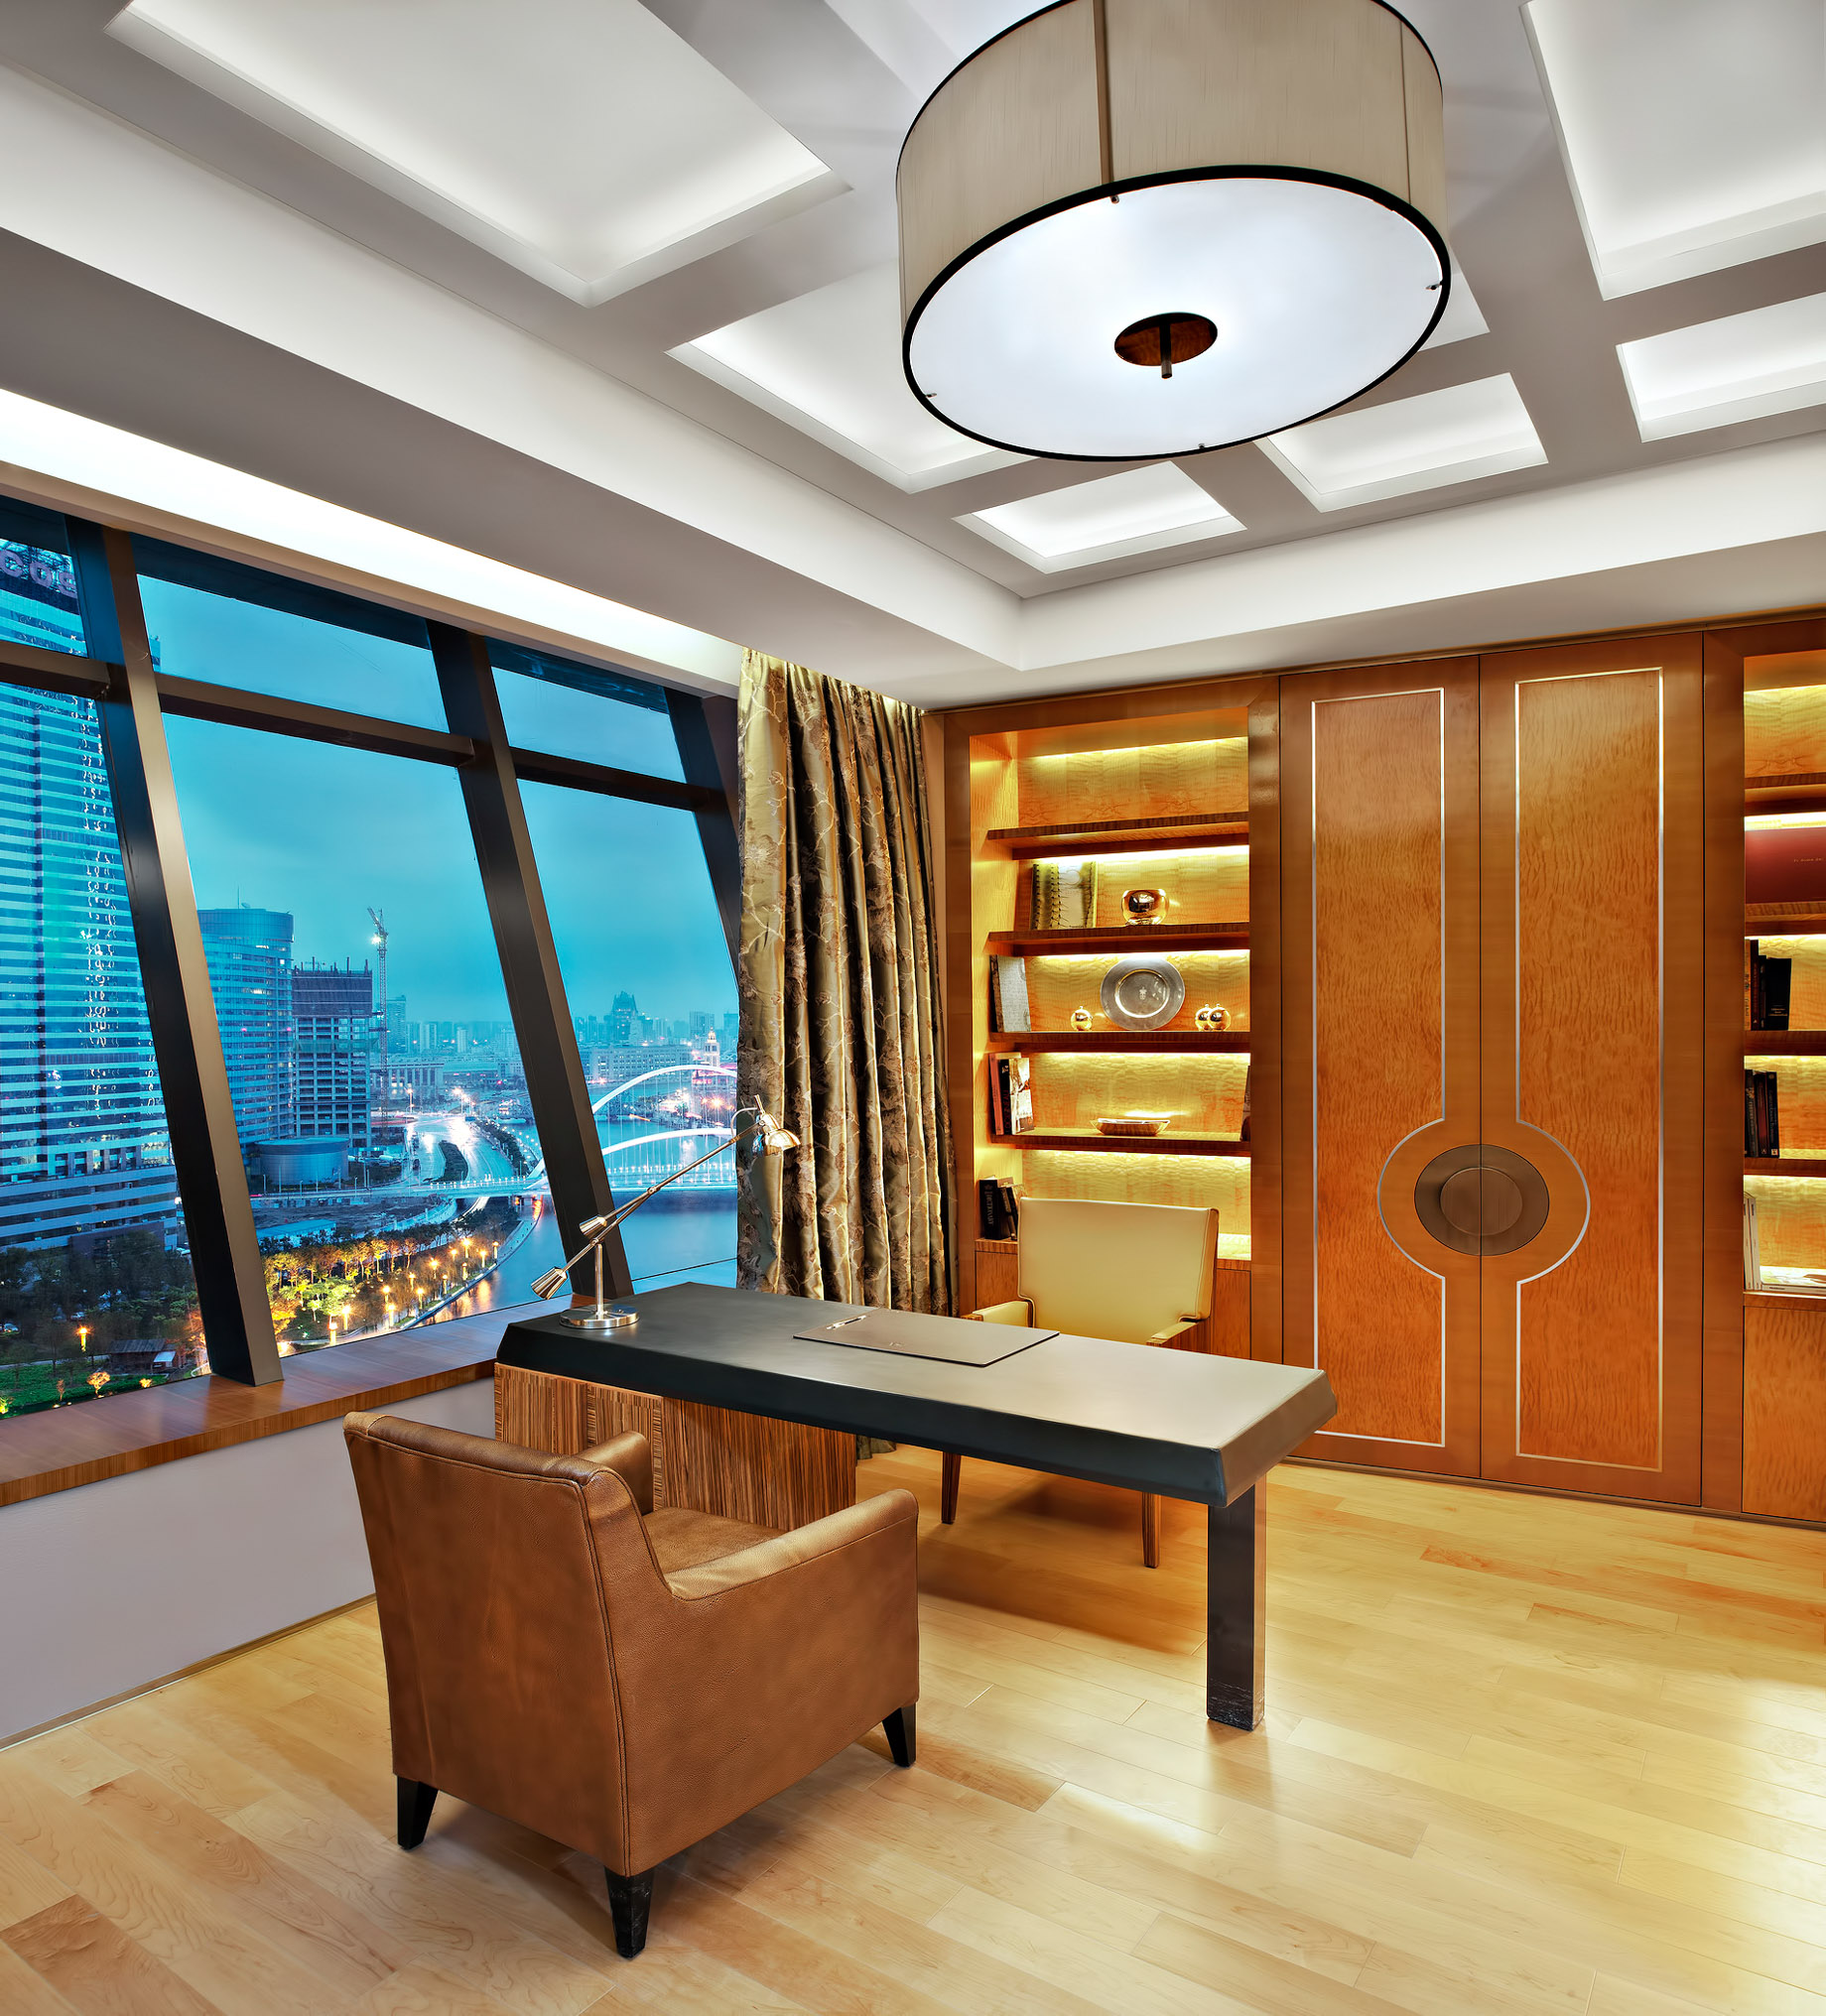 The St. Regis Tianjin Luxury Hotel – Tianjin, China – Riviera Restaurant – Presidential Suite Study Room